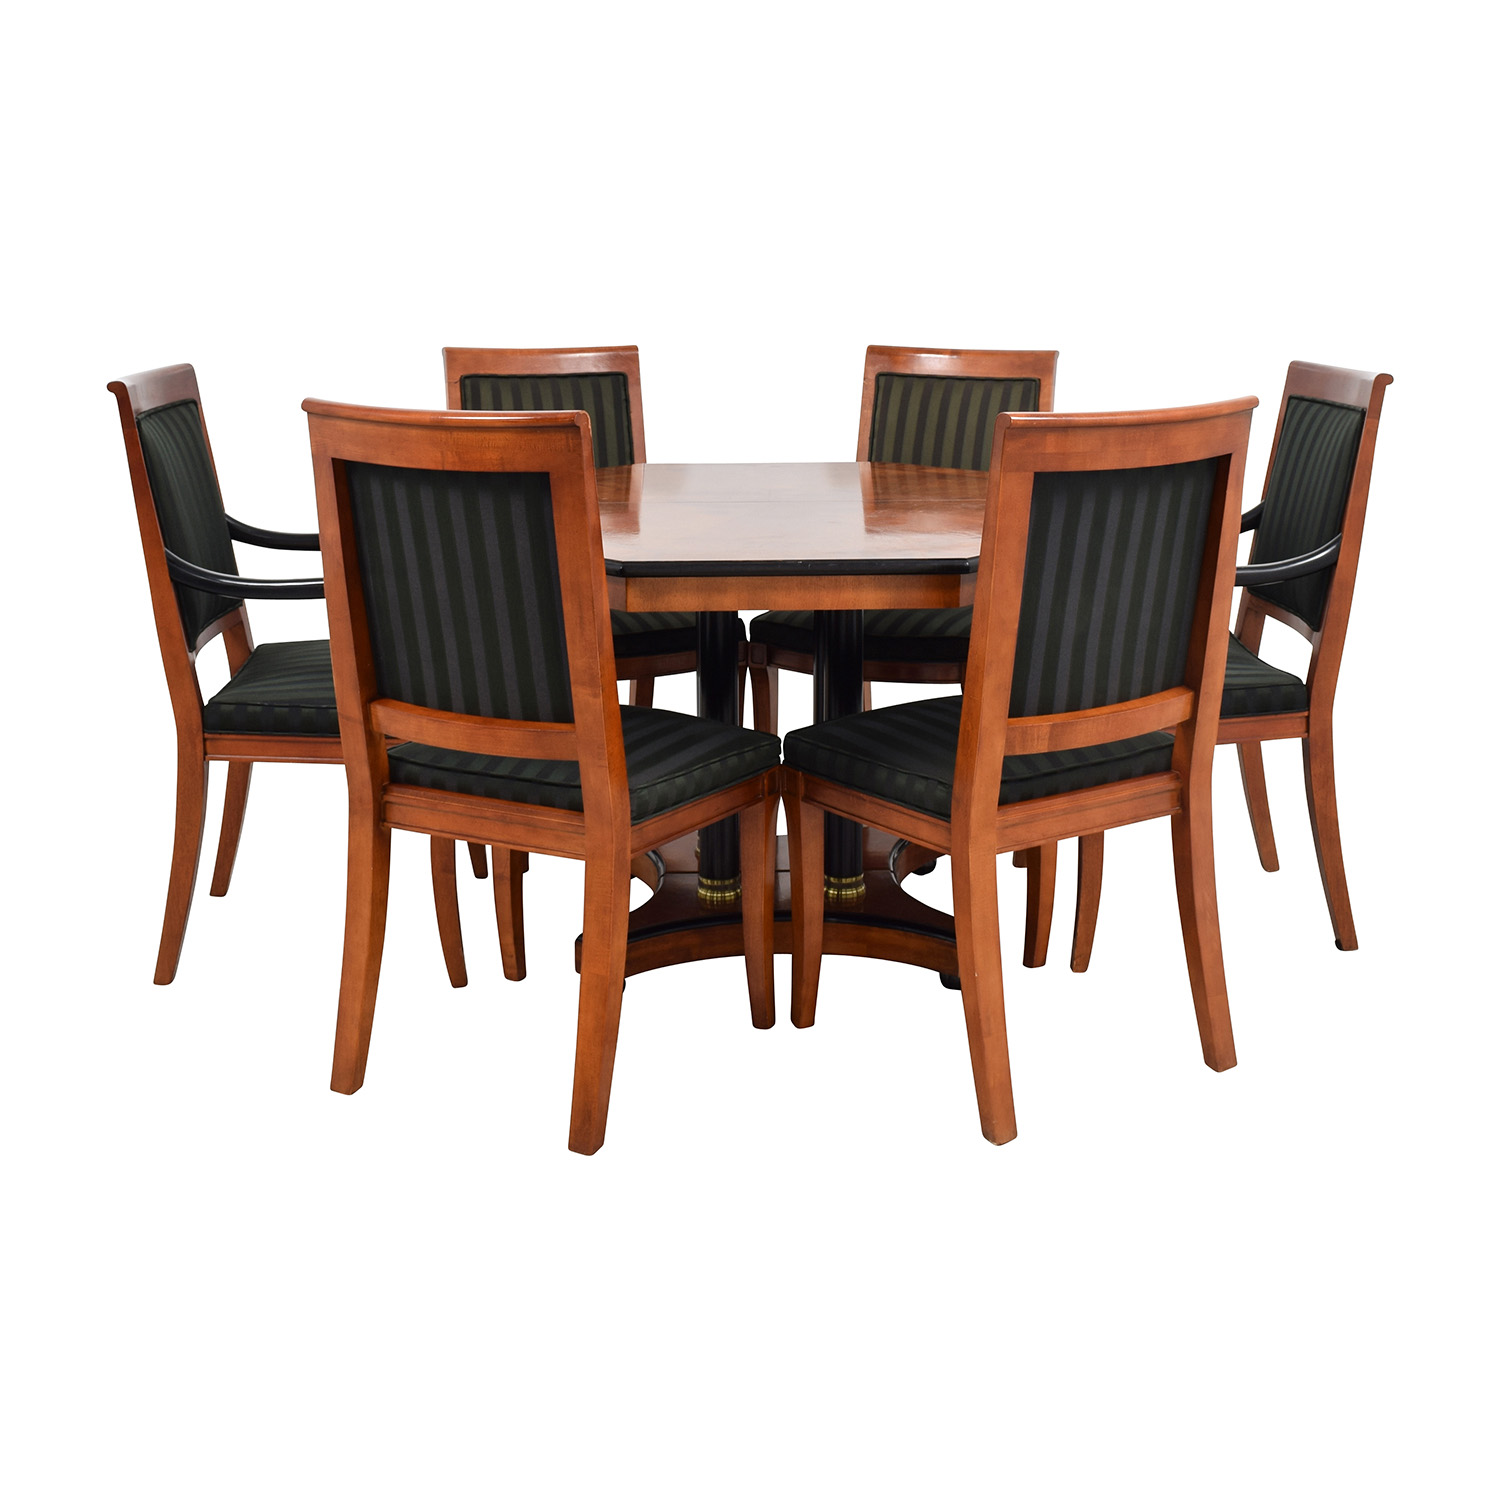 Vintage Dining Table Set with Gold Accent dimensions